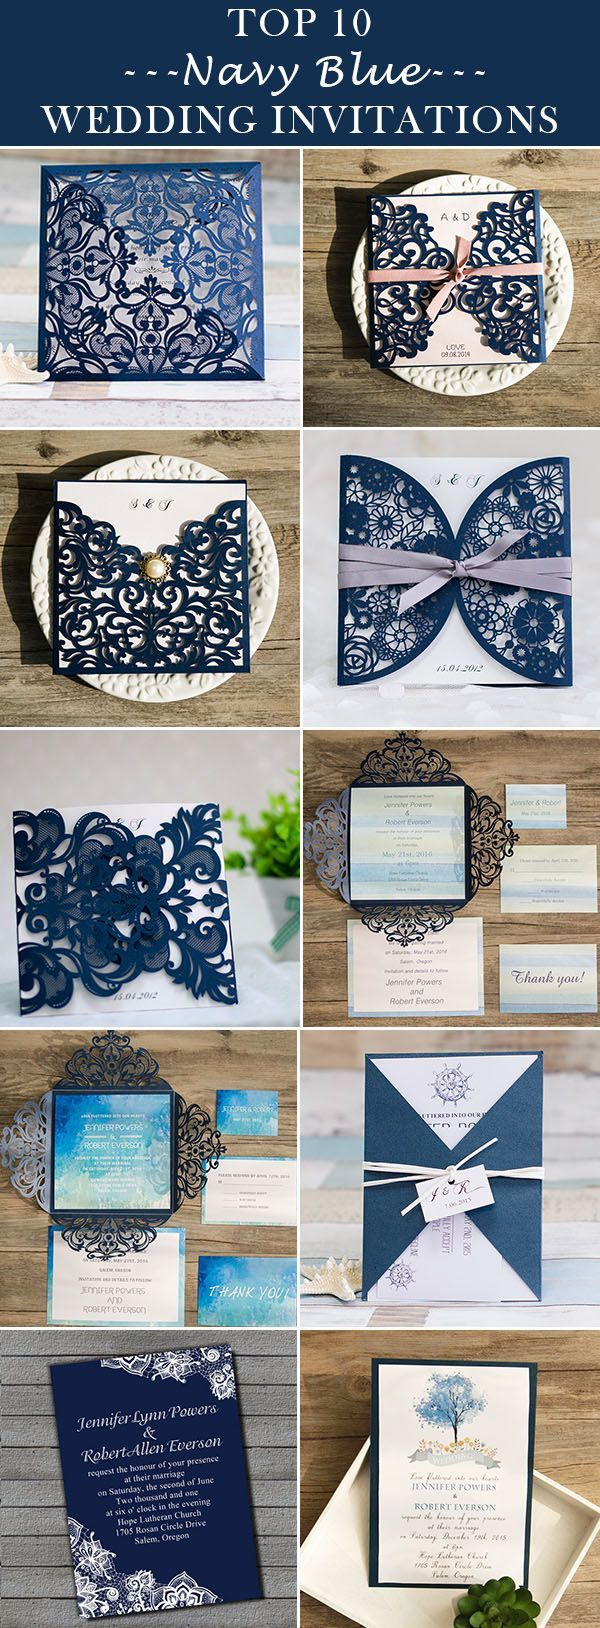 Top 10 Trending Navy Blue Wedding Invitations For 2016 Brides  Create Invitations Online Free No Download